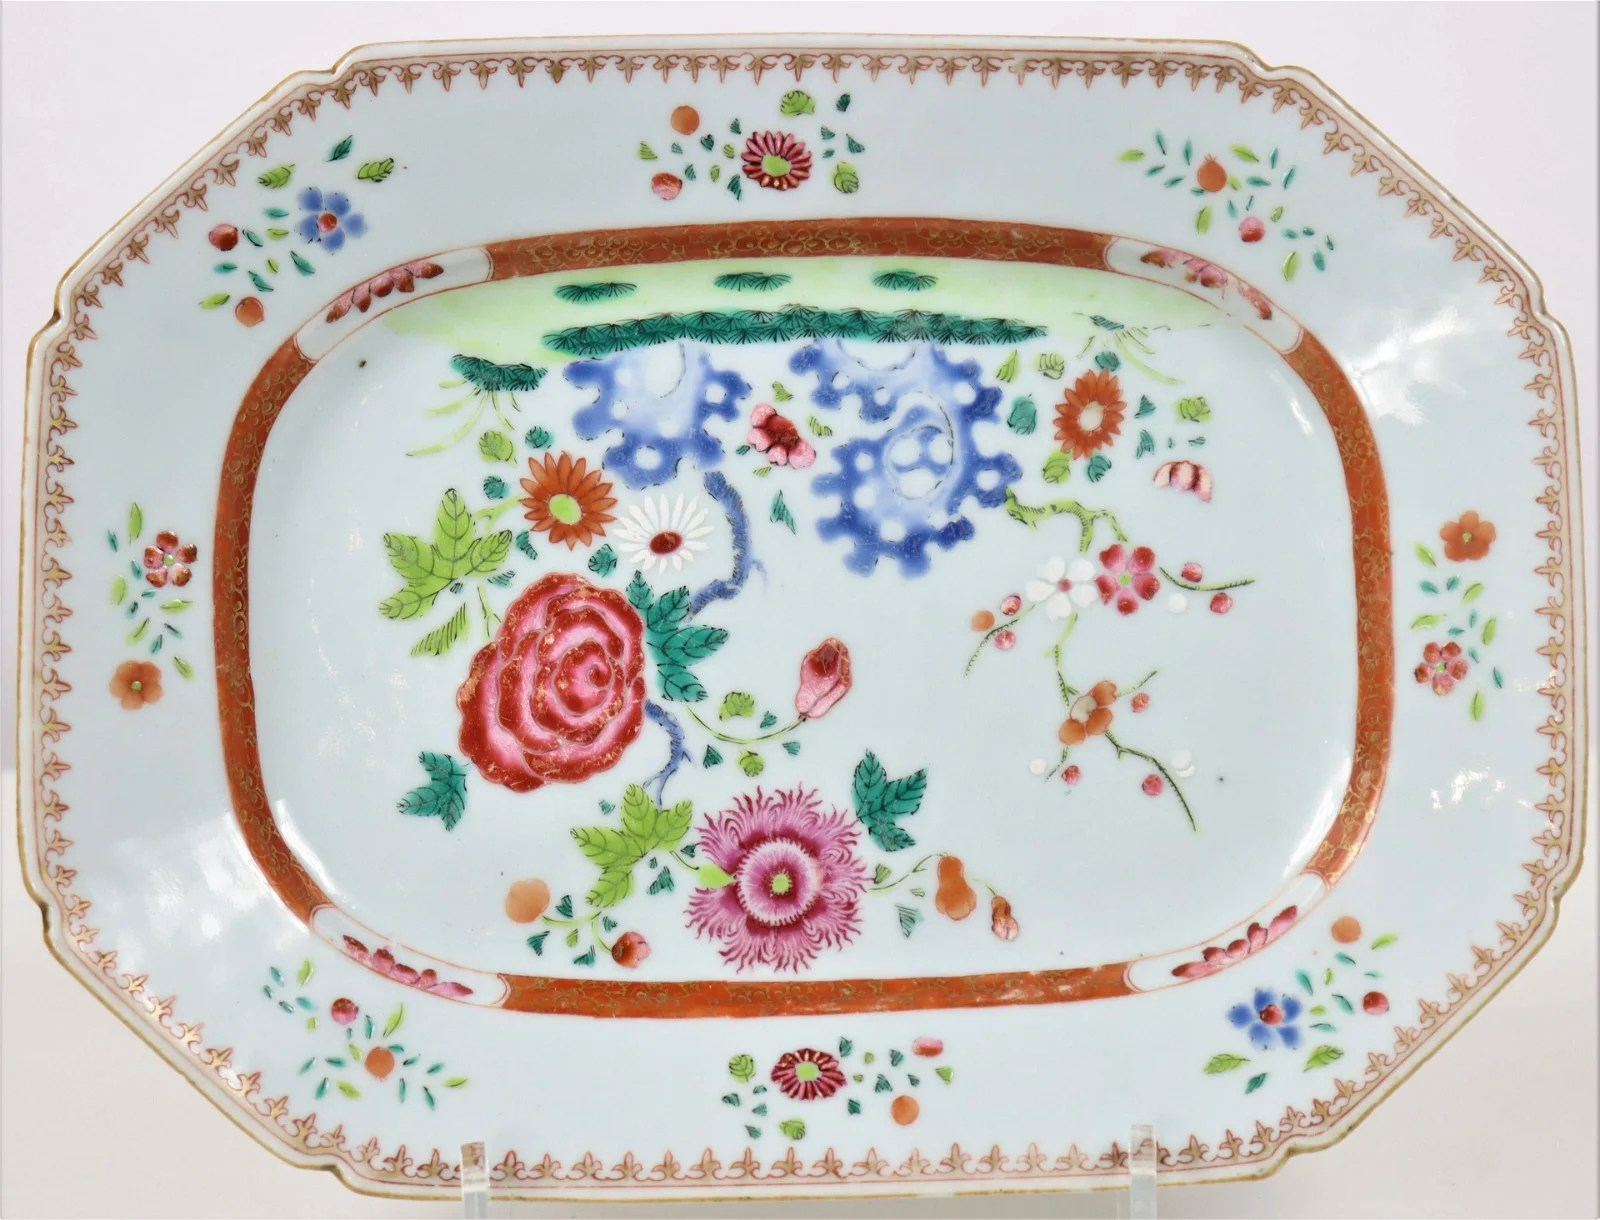 19th C Chinese Export Porcelain Famille Platter